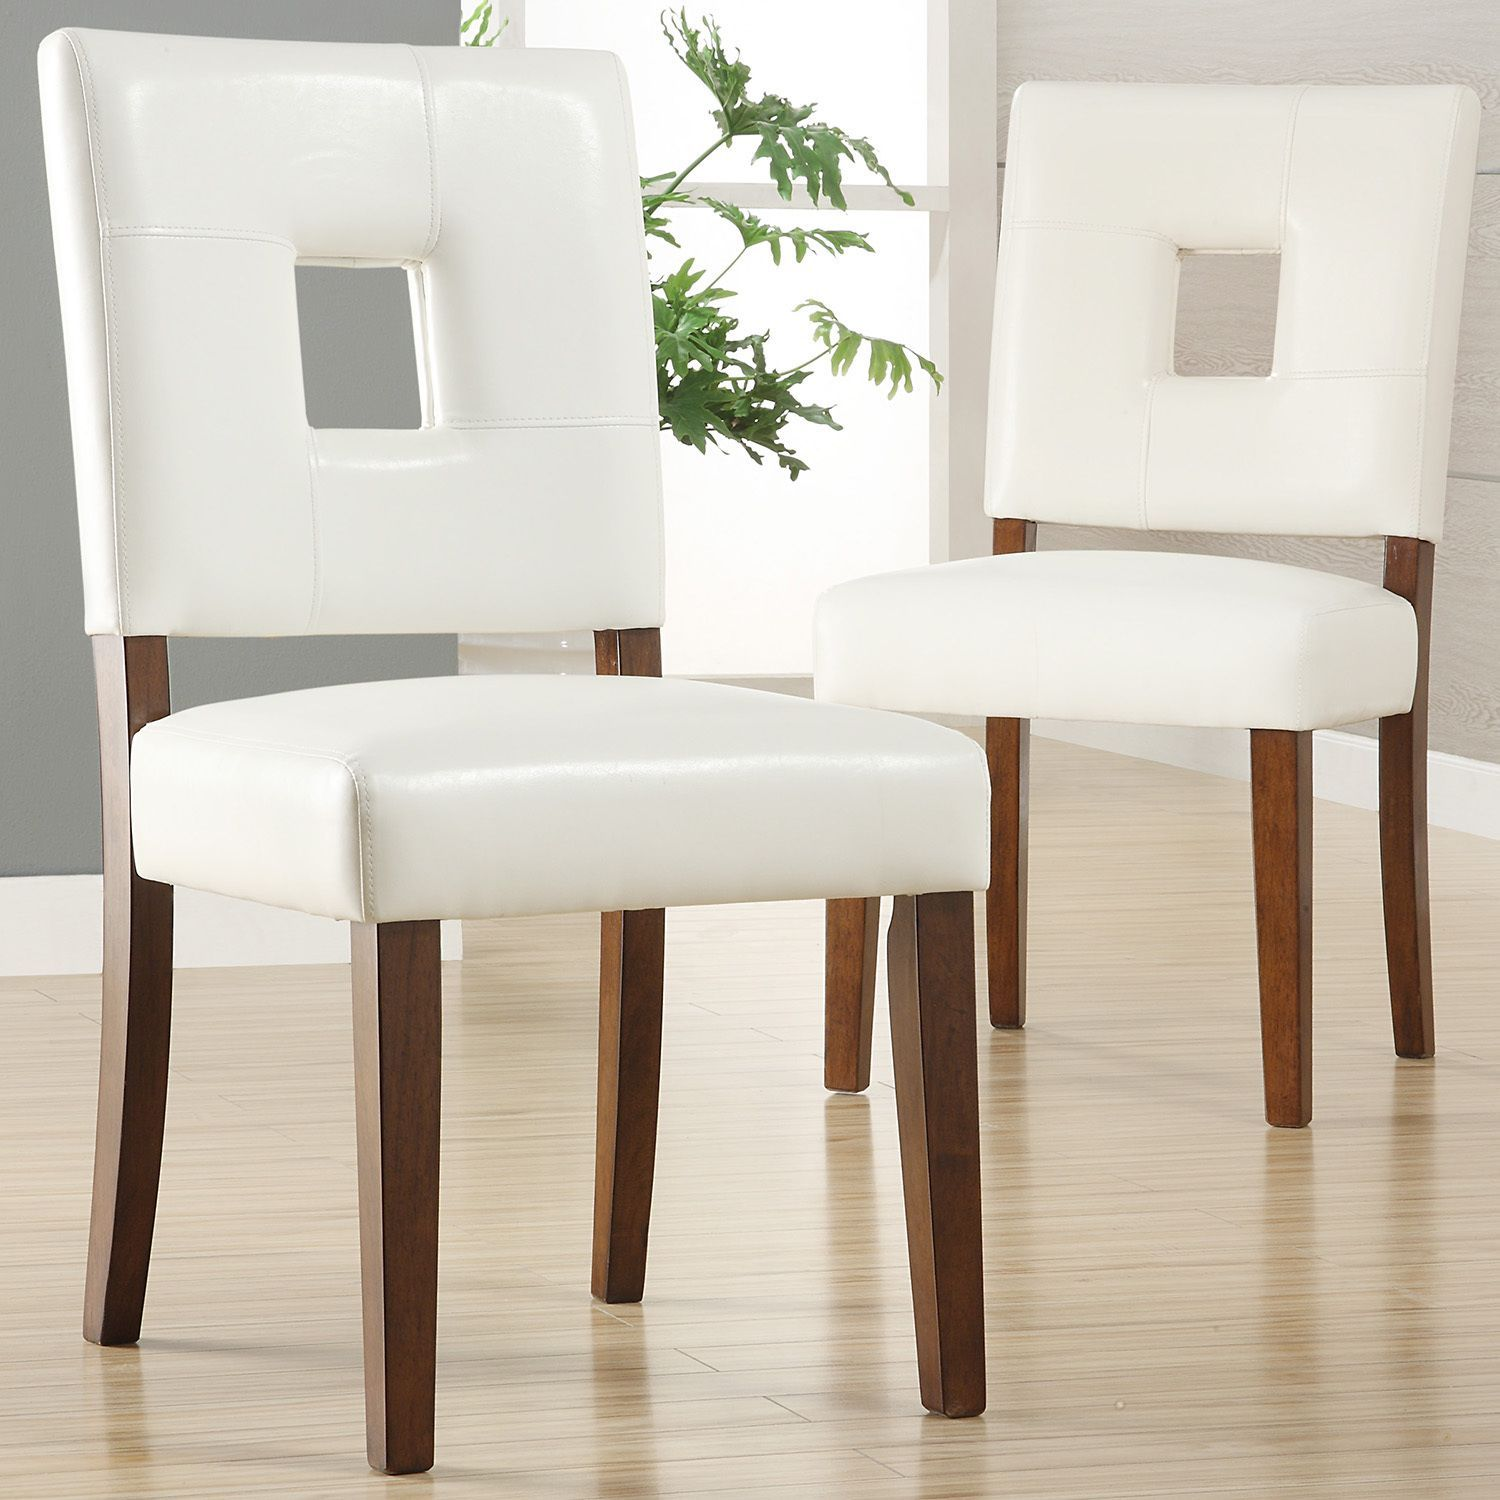 Calvados Faux Leather White Dining Chairs (Set Of 2) By